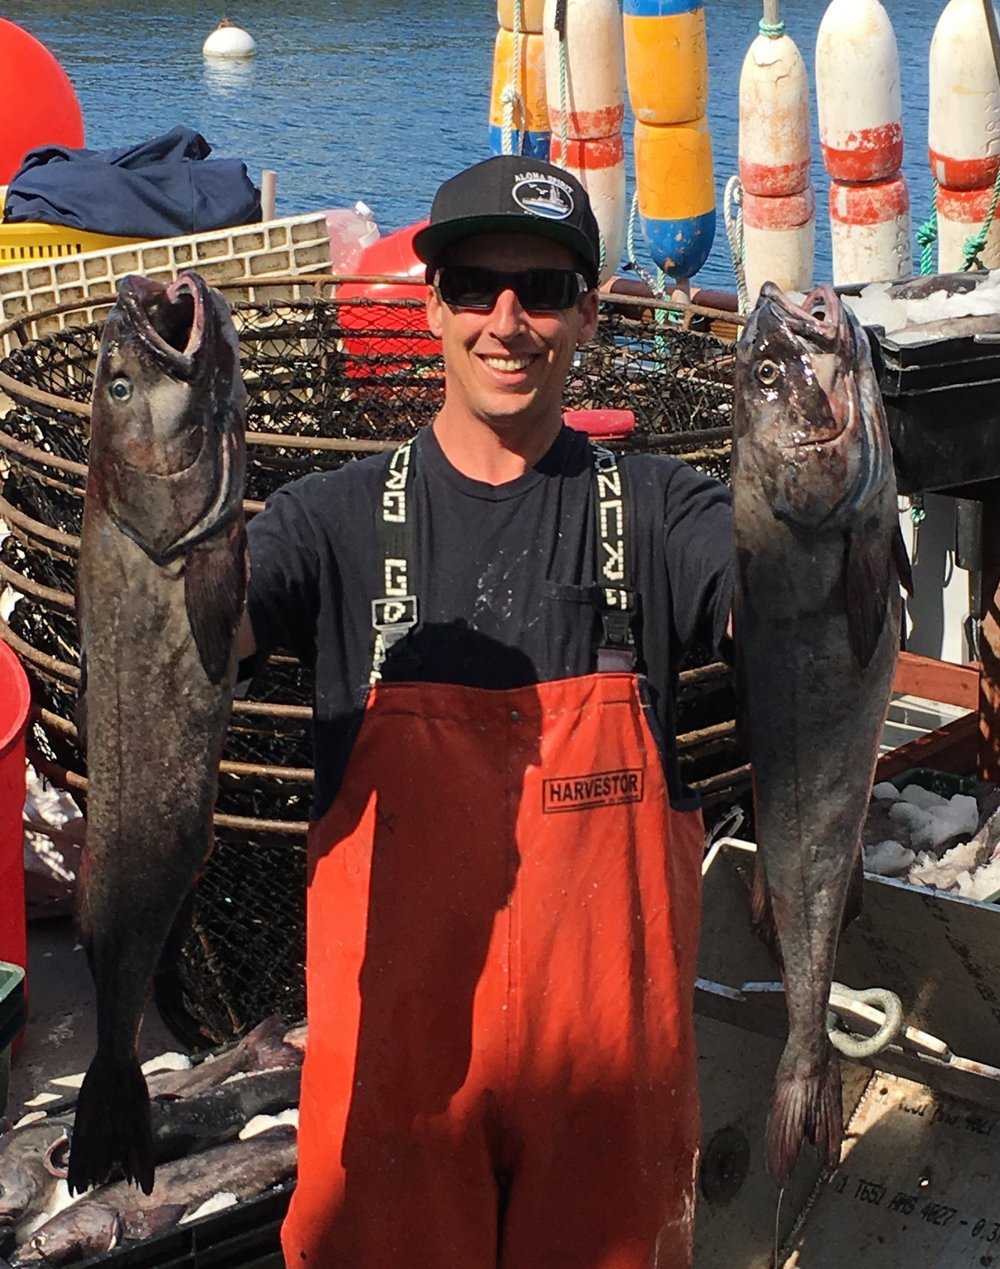 Jerry Wetle, holding a prized catch of 10-15 lb sablefish (black cod)